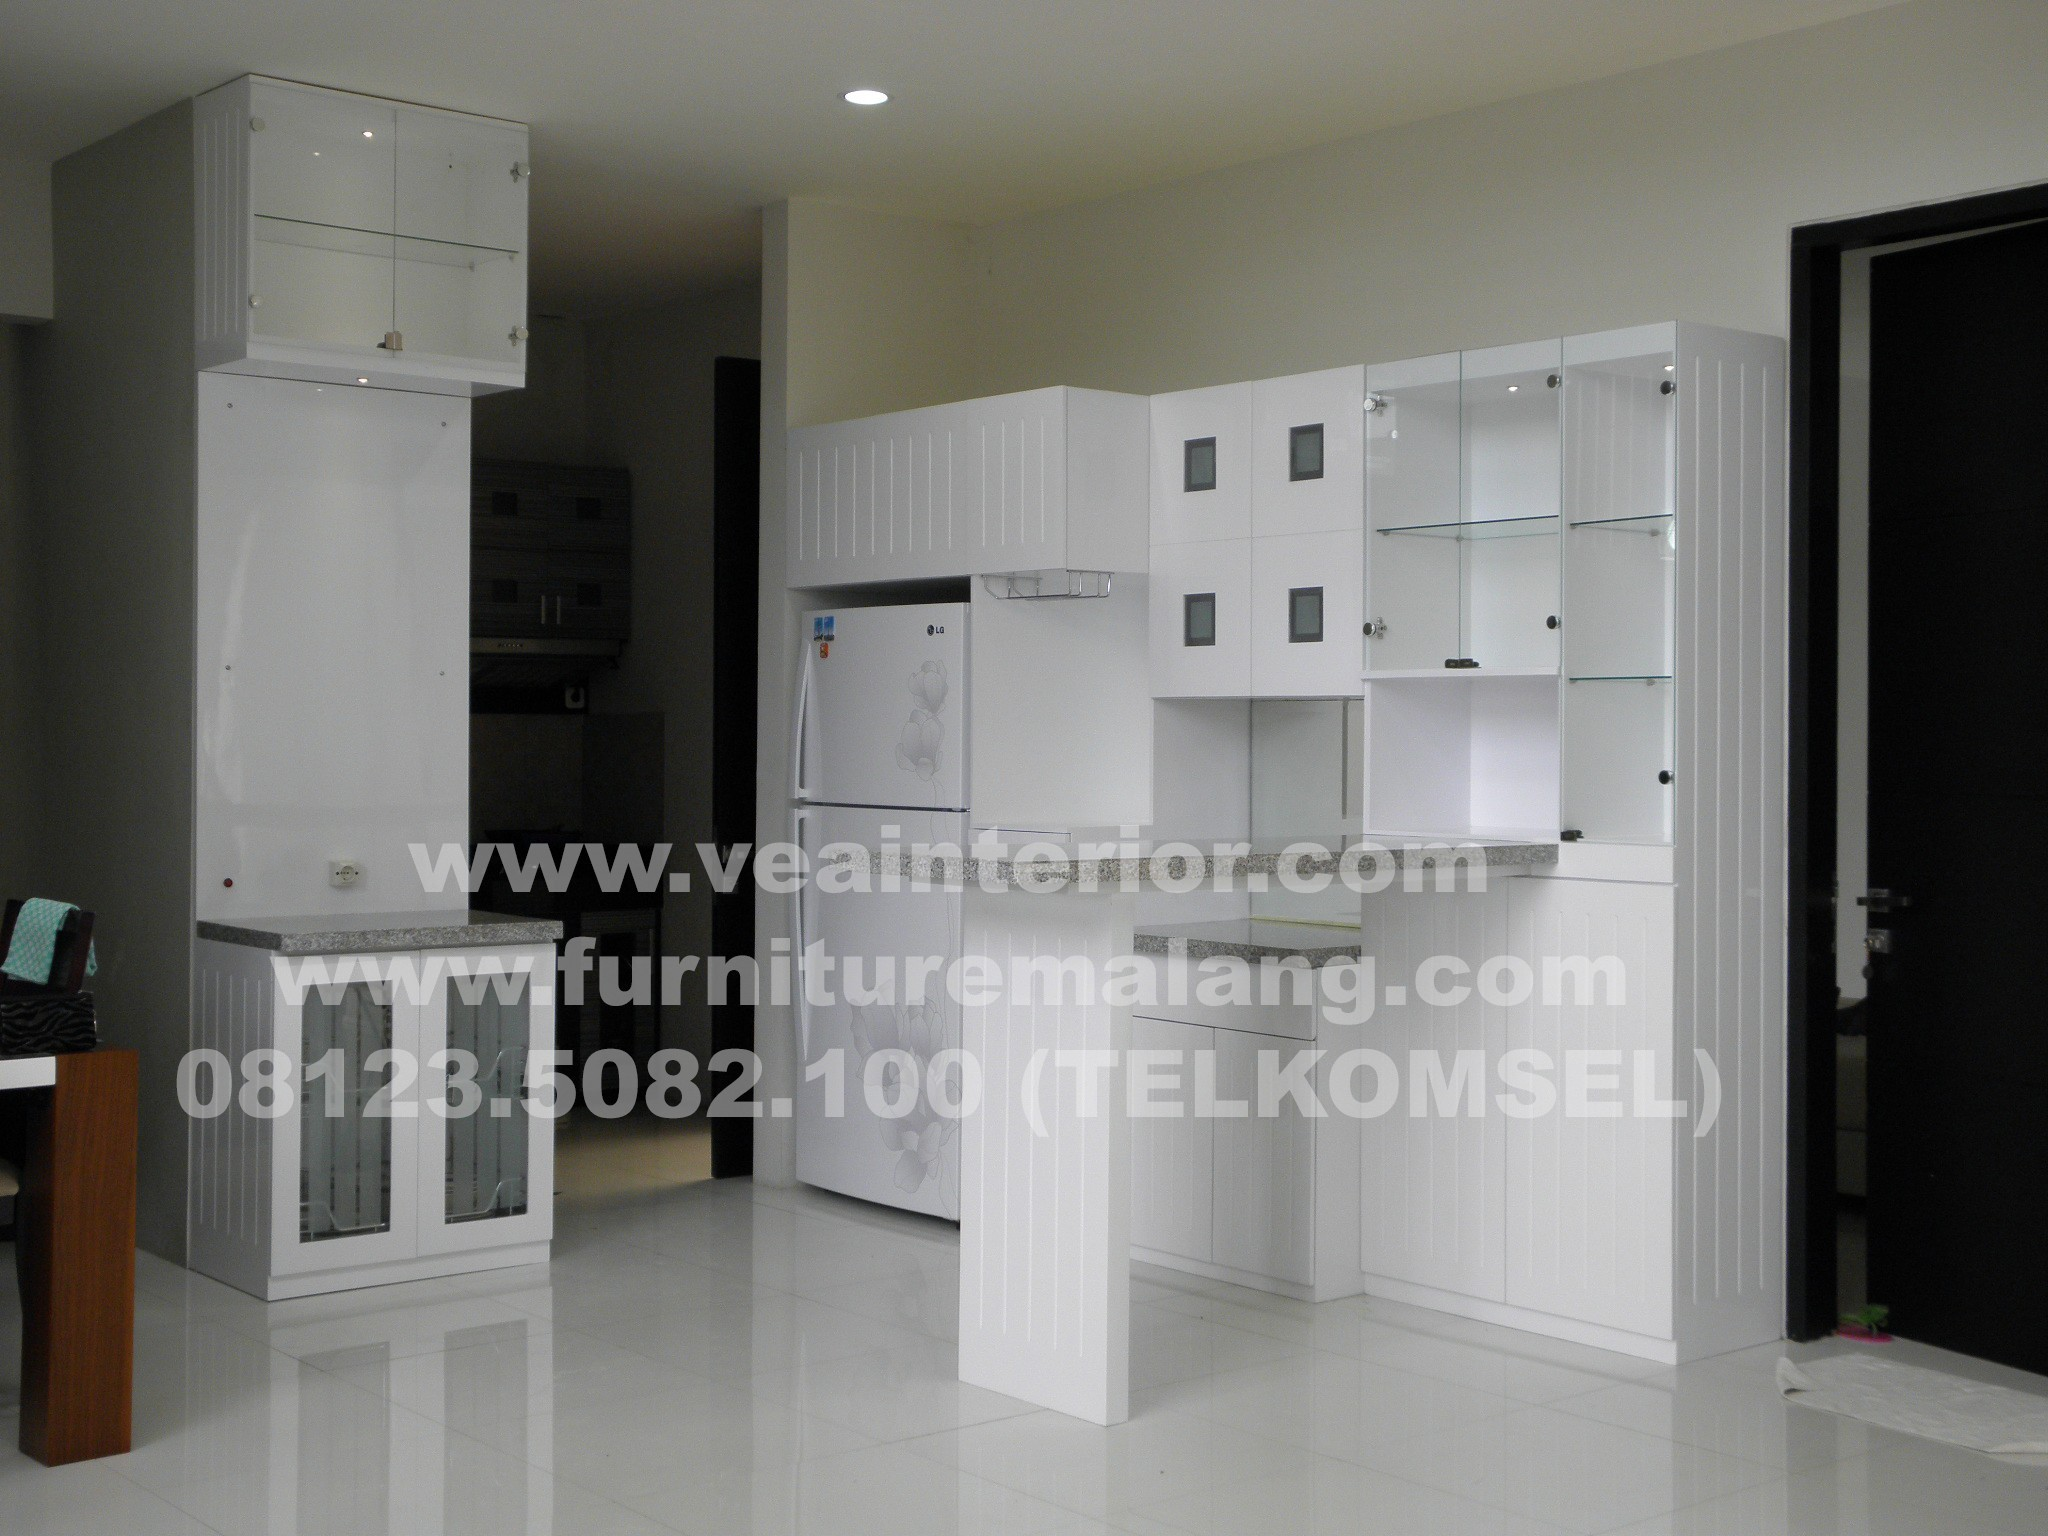 Desain Dapur Leter U Terbagus Untuk Kitchen Set Mini Bar Surabaya Kitchen Appliances Tips and Review Of Desain Dapur Leter U Terbaik Untuk Profile Resume Examples Examples Graduate Schools In Los Angeles